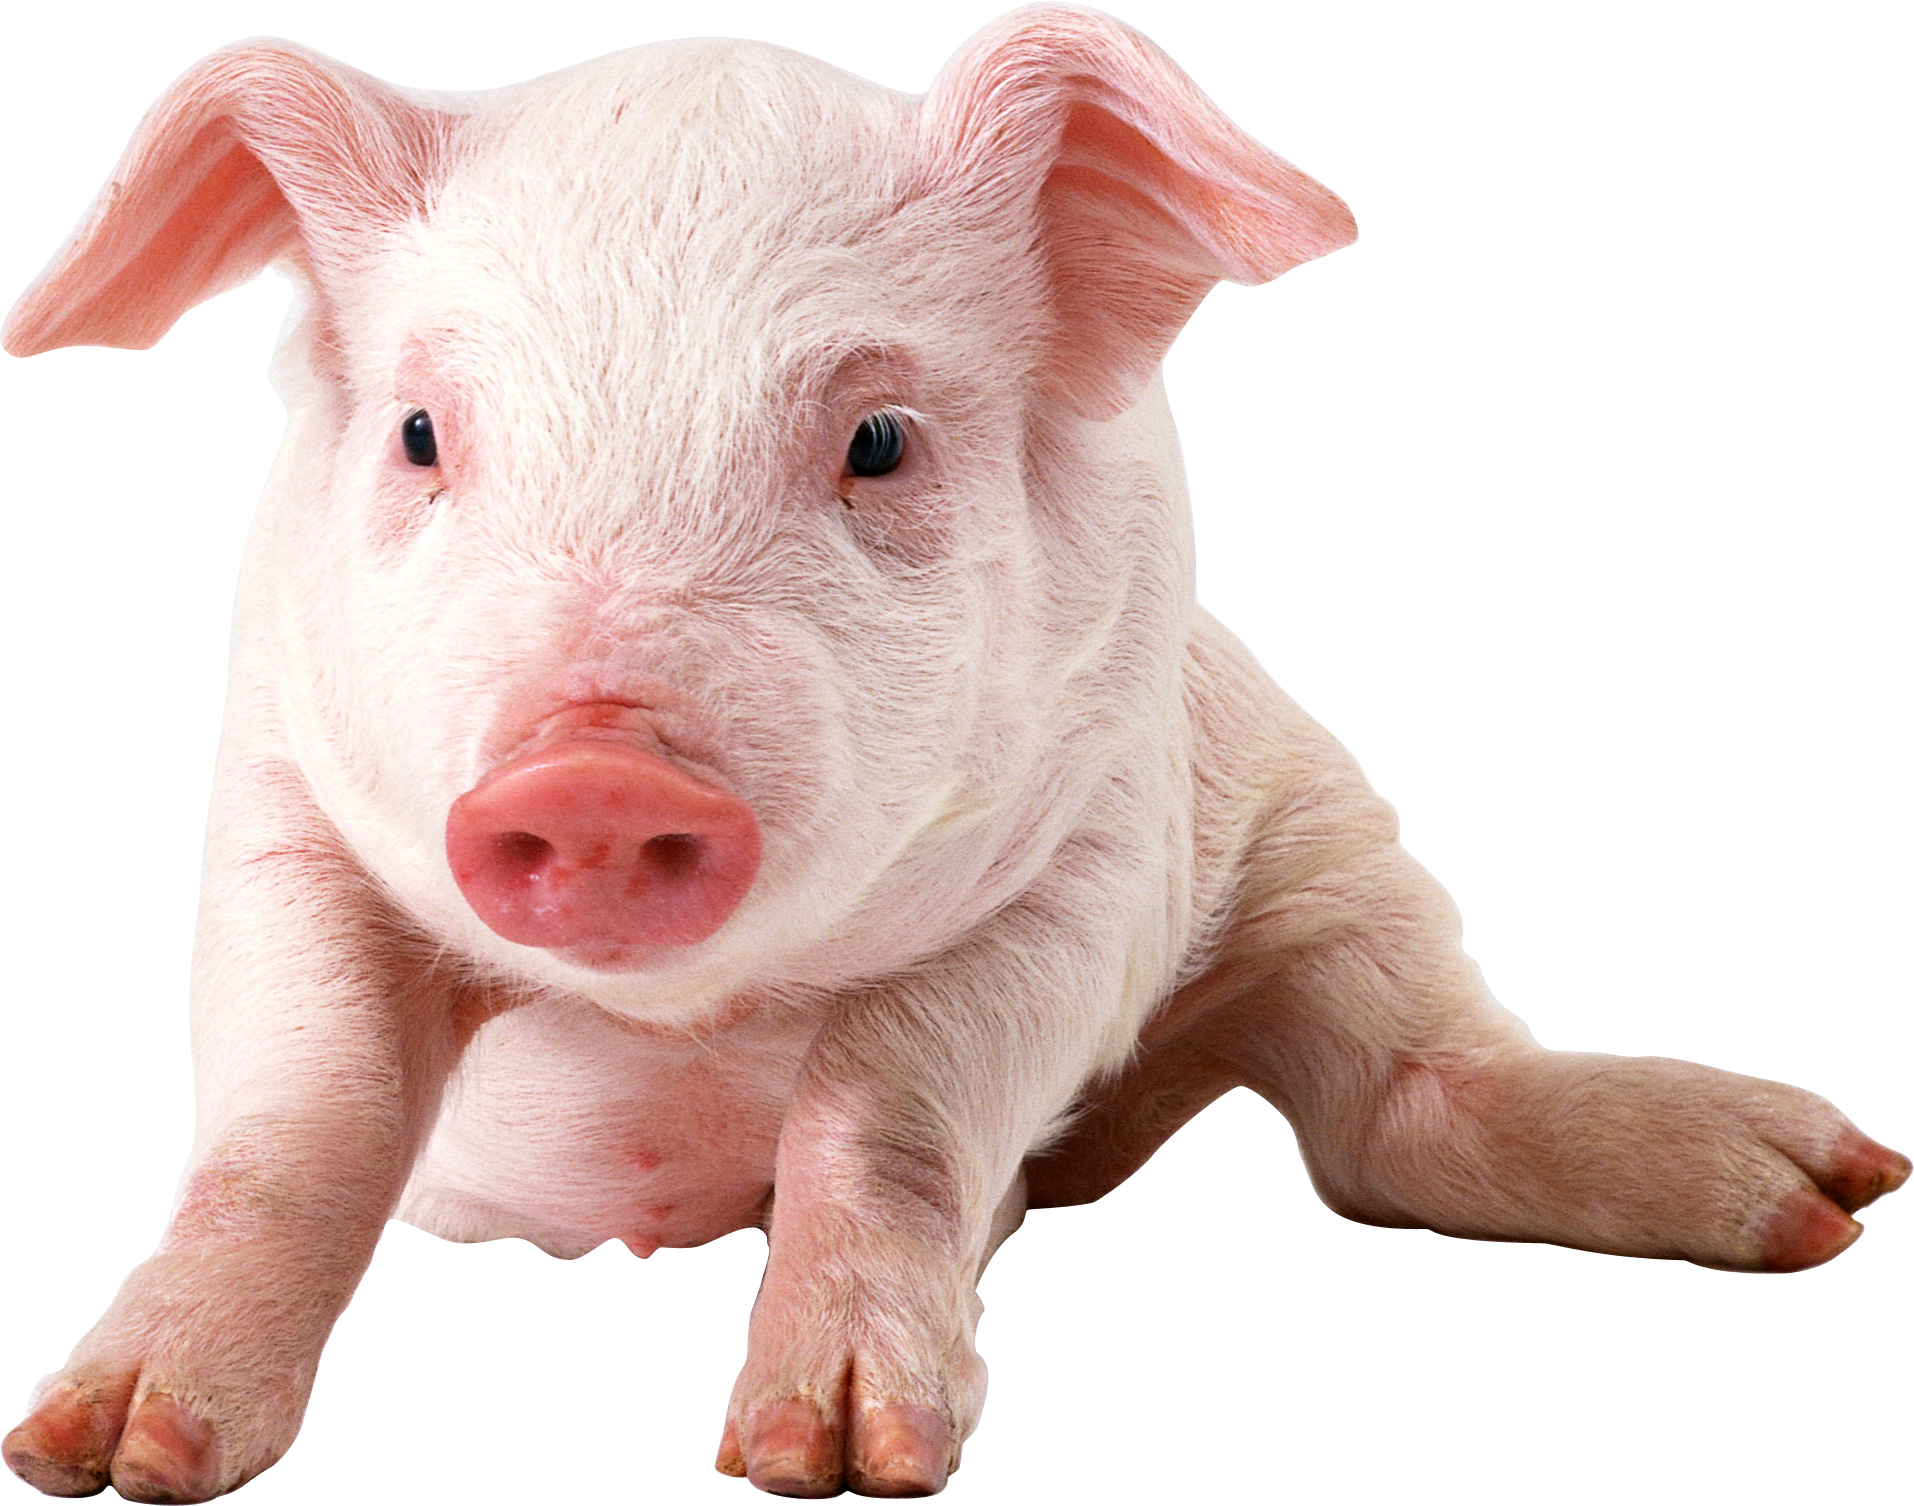 pig png image pinterest pig png and animal #23492